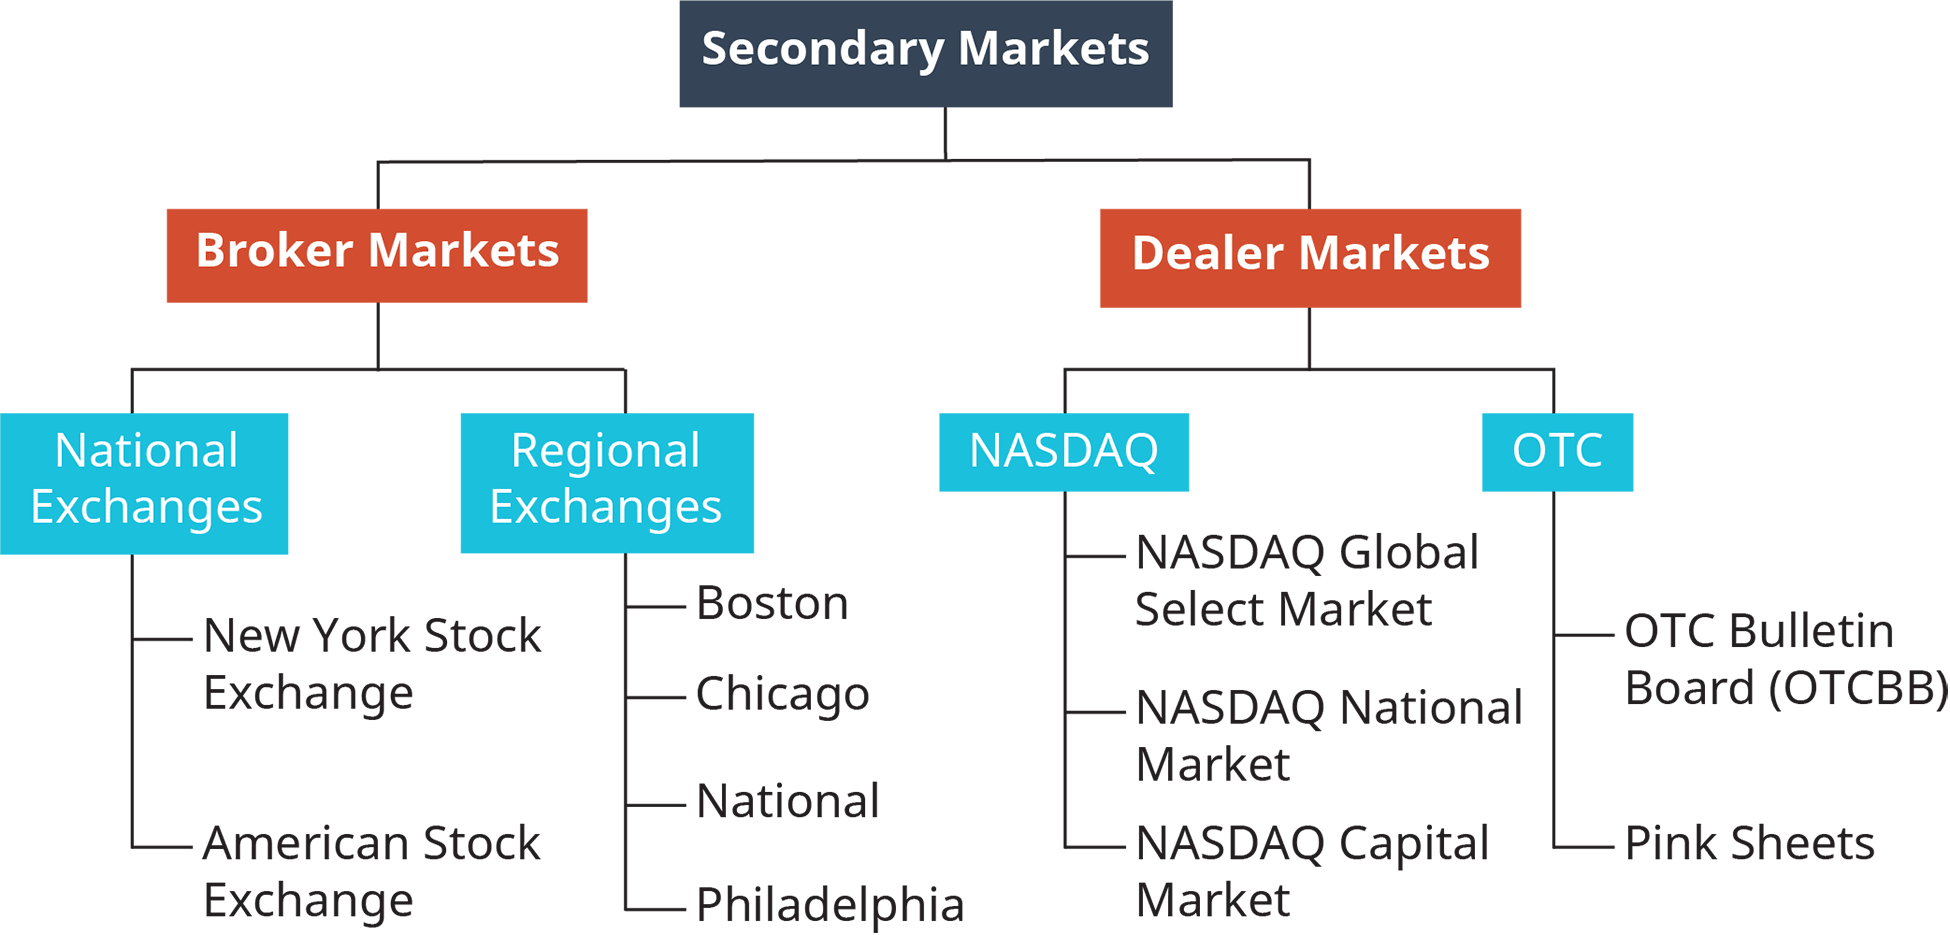 Secondary markets are separated into 2 sections, broker markets and dealer markets. The broker market is separated into 2 sections, national exchanges and regional exchanges. The national exchanges include New York Stock Exchange, and American stock exchange. The regional exchanges include Boston, Chicago, National, and Philadelphia. The dealer markets are separated into 2 sections, Nasdaq, and O T C. Nasdaq includes Nasdaq global select market, Nasdaq national market, and Nasdaq capital market. O T C includes O T C bulletin board, called O T C B B; and Pink sheets.